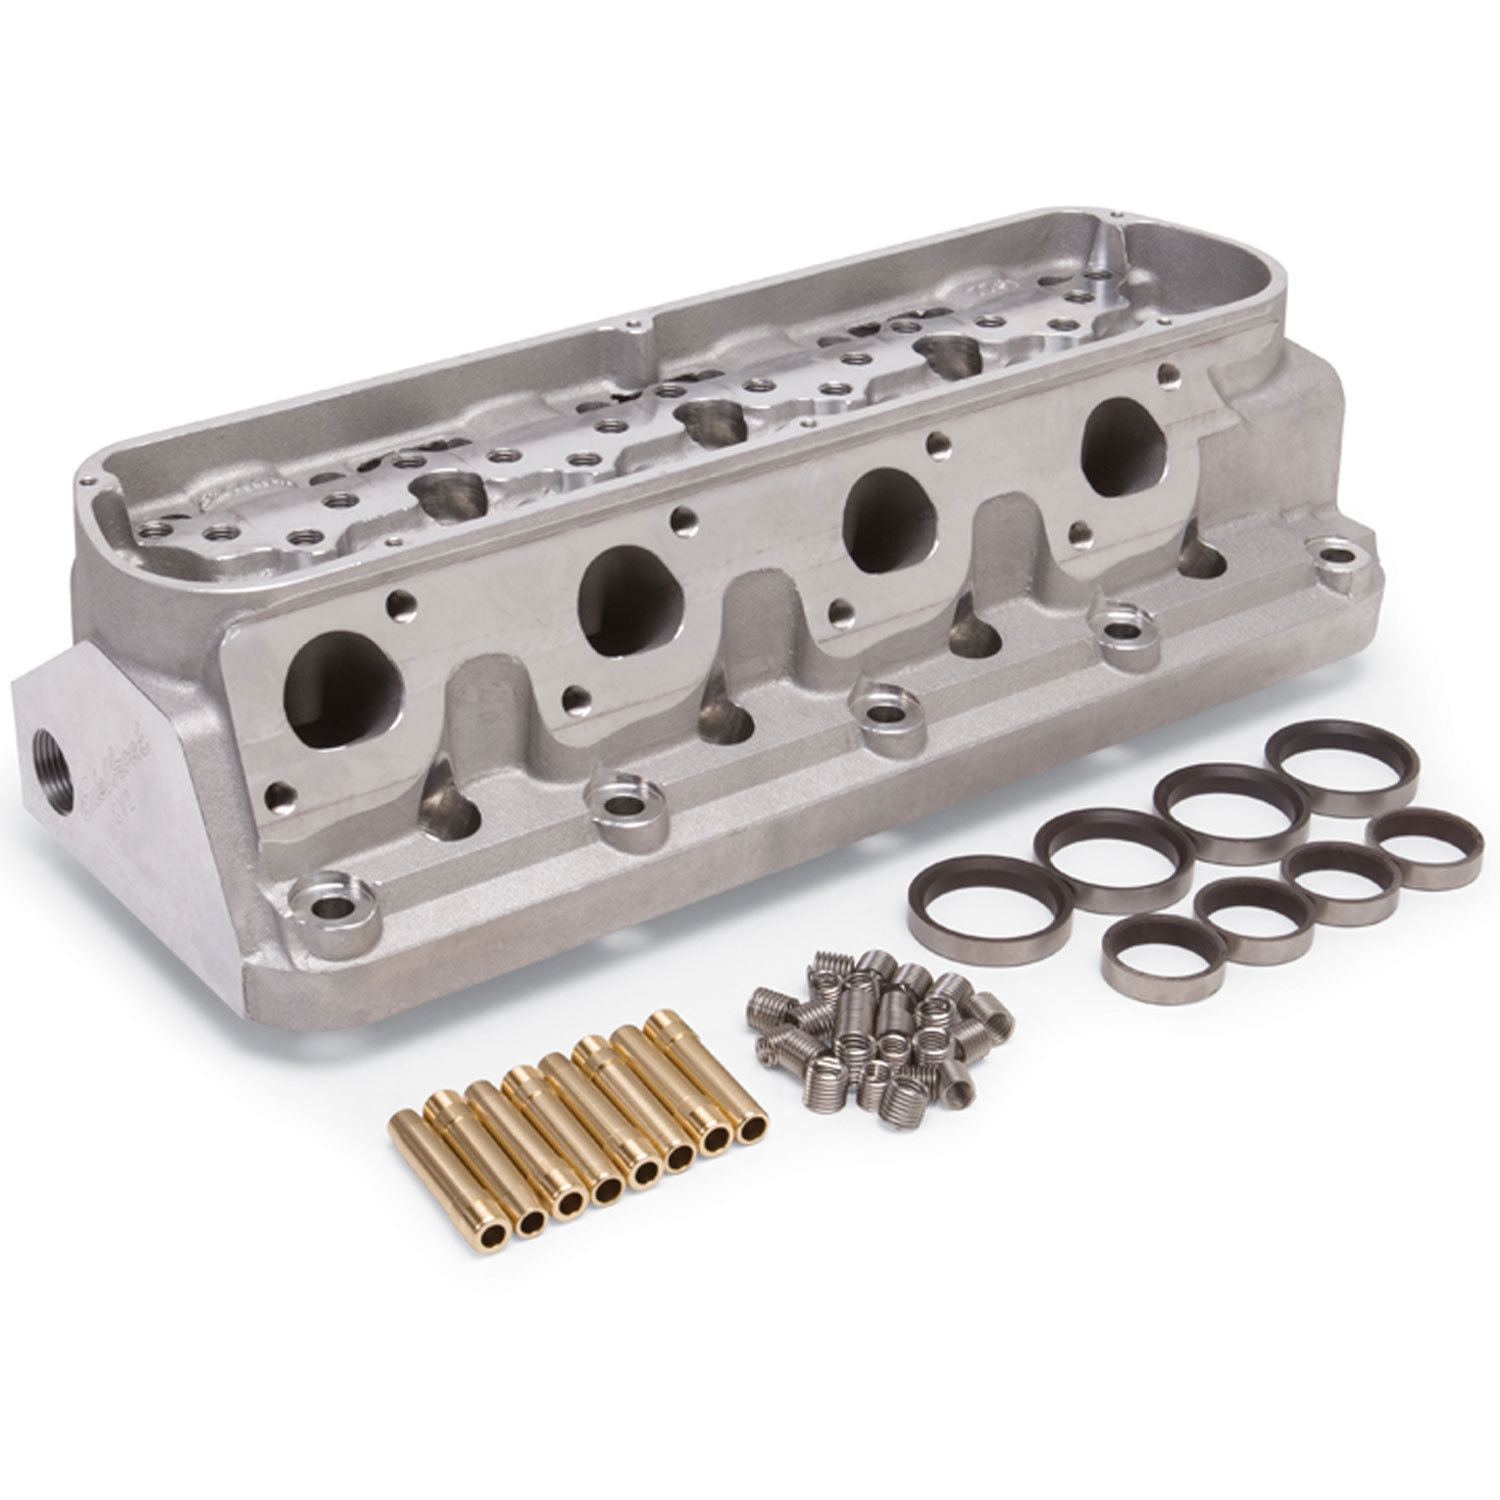 Main Billet Small Block Ford Windsor Timing Cover